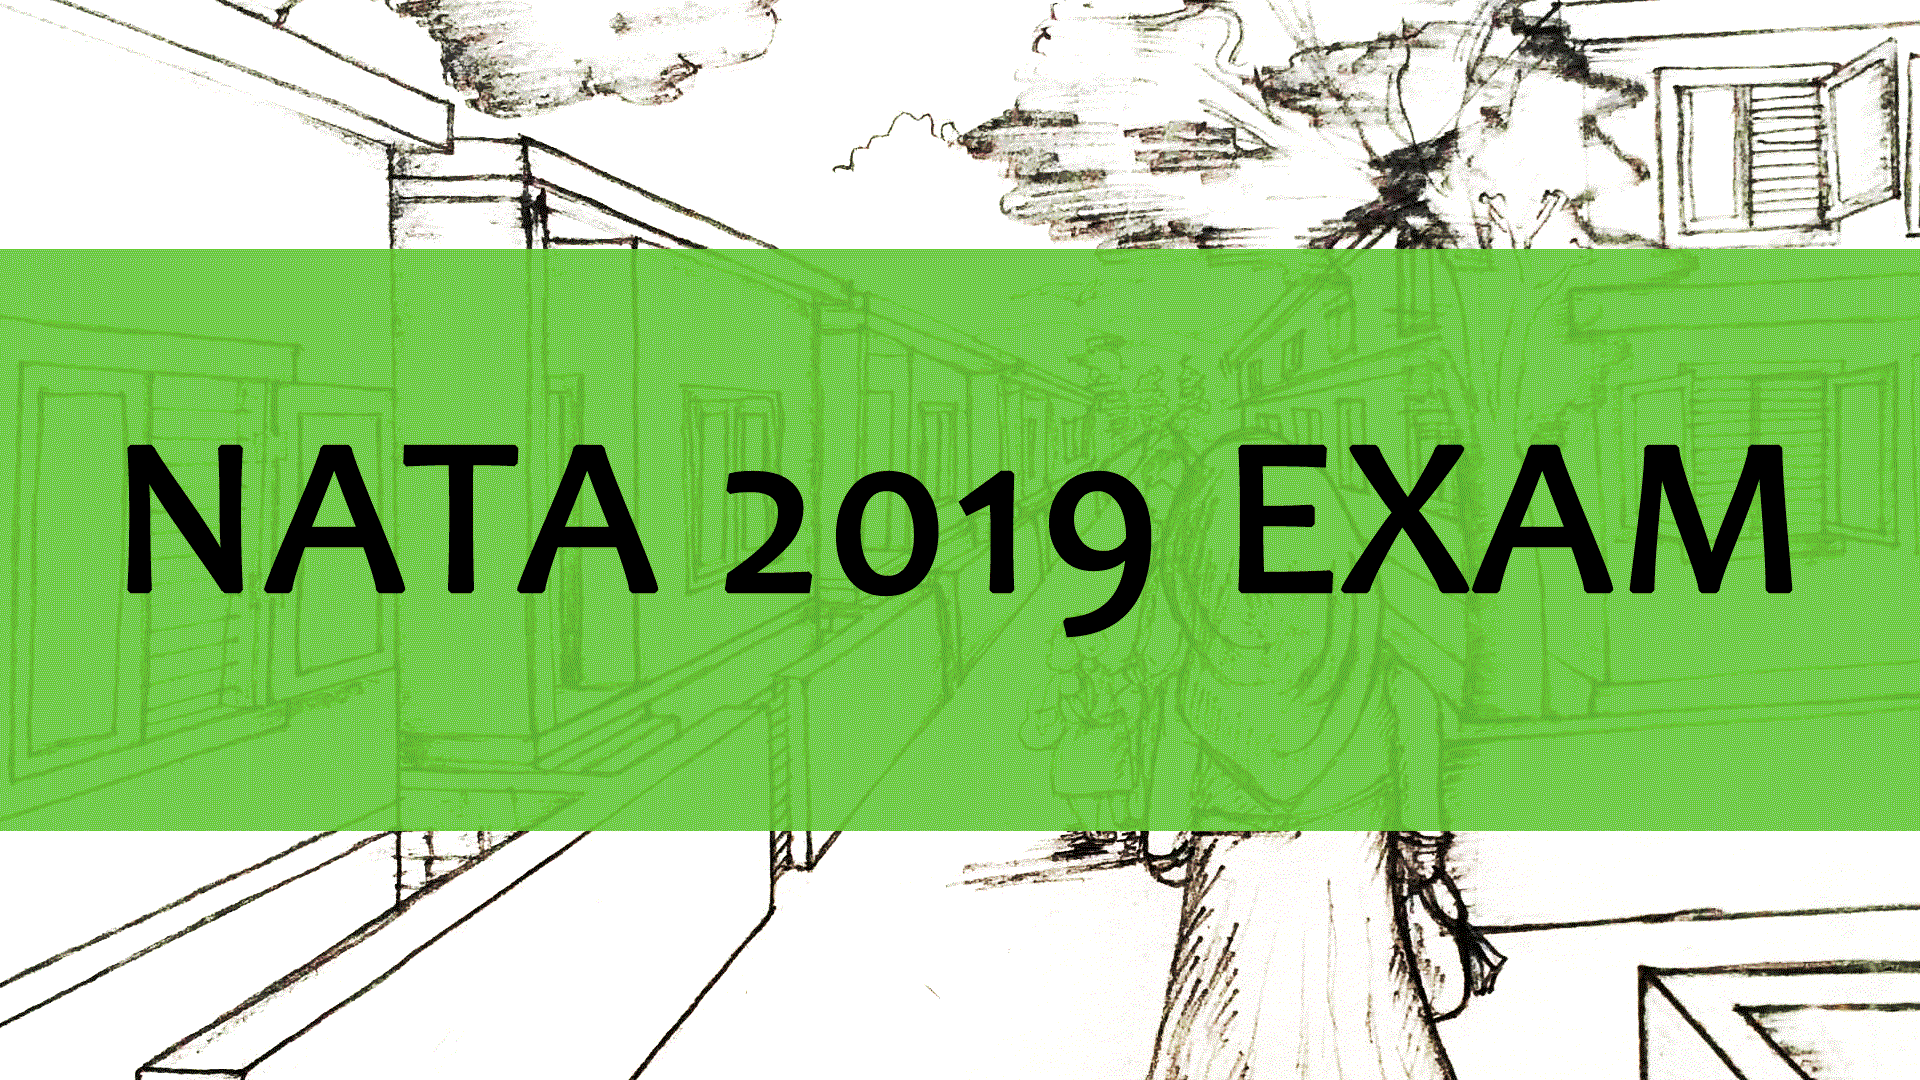 NATA 2019 exam facts